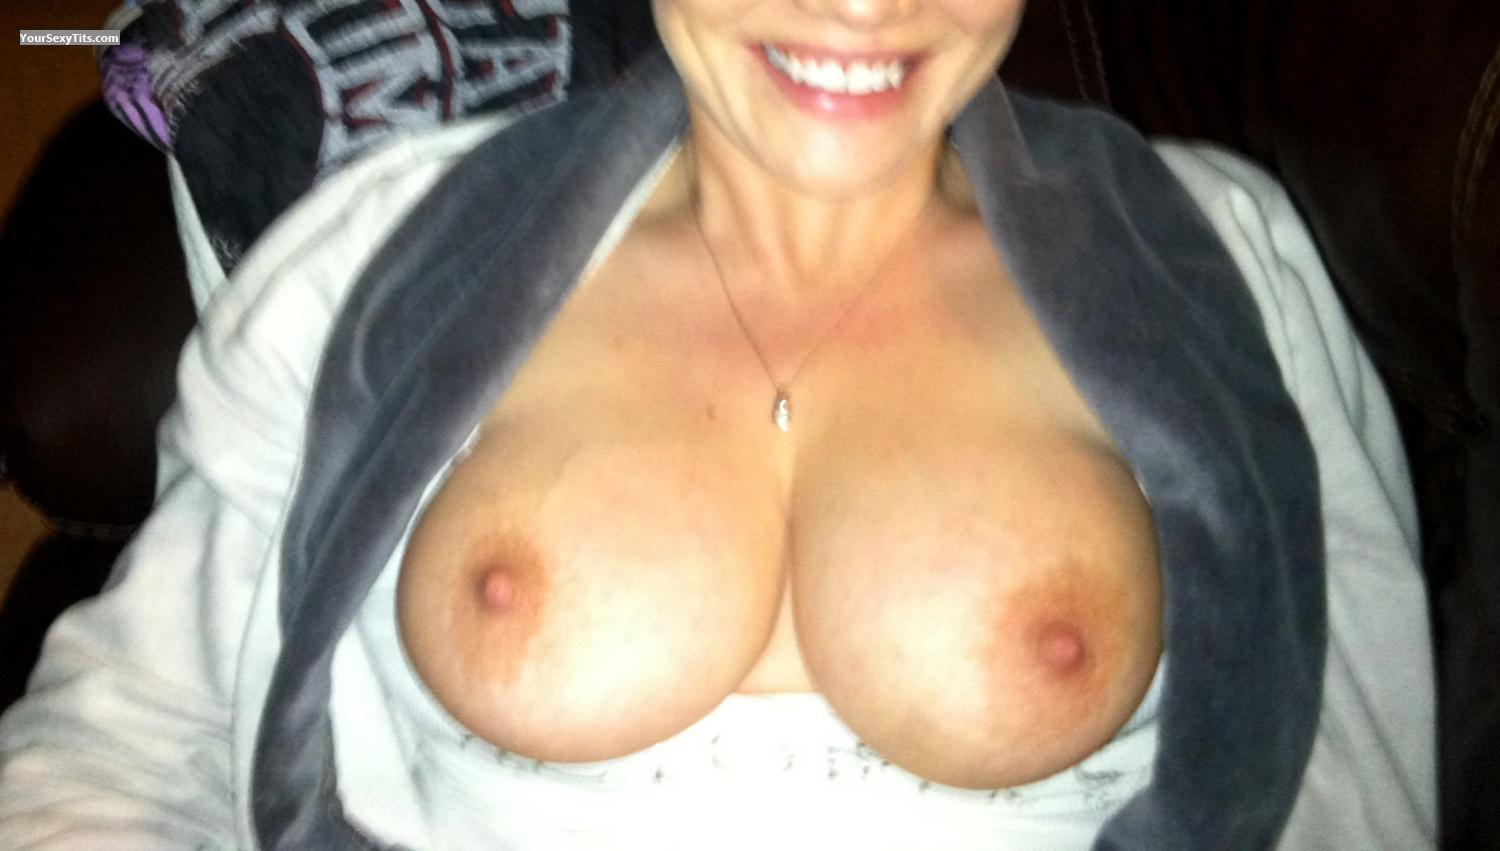 Tit Flash: Medium Tits By IPhone - Sweettitties75 from United States